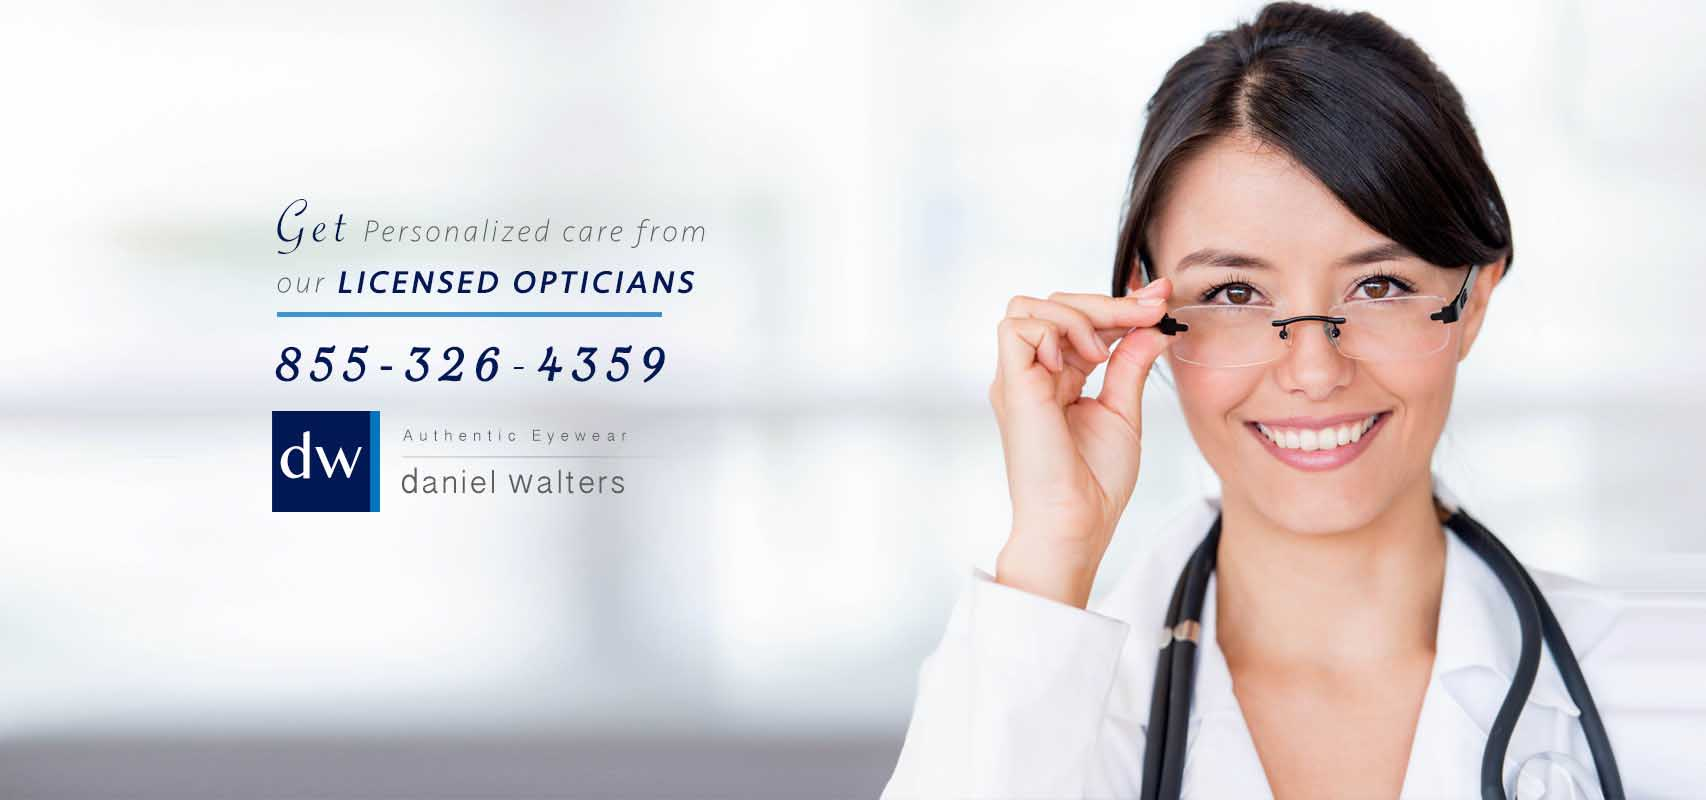 Prescription eyewear made for you!